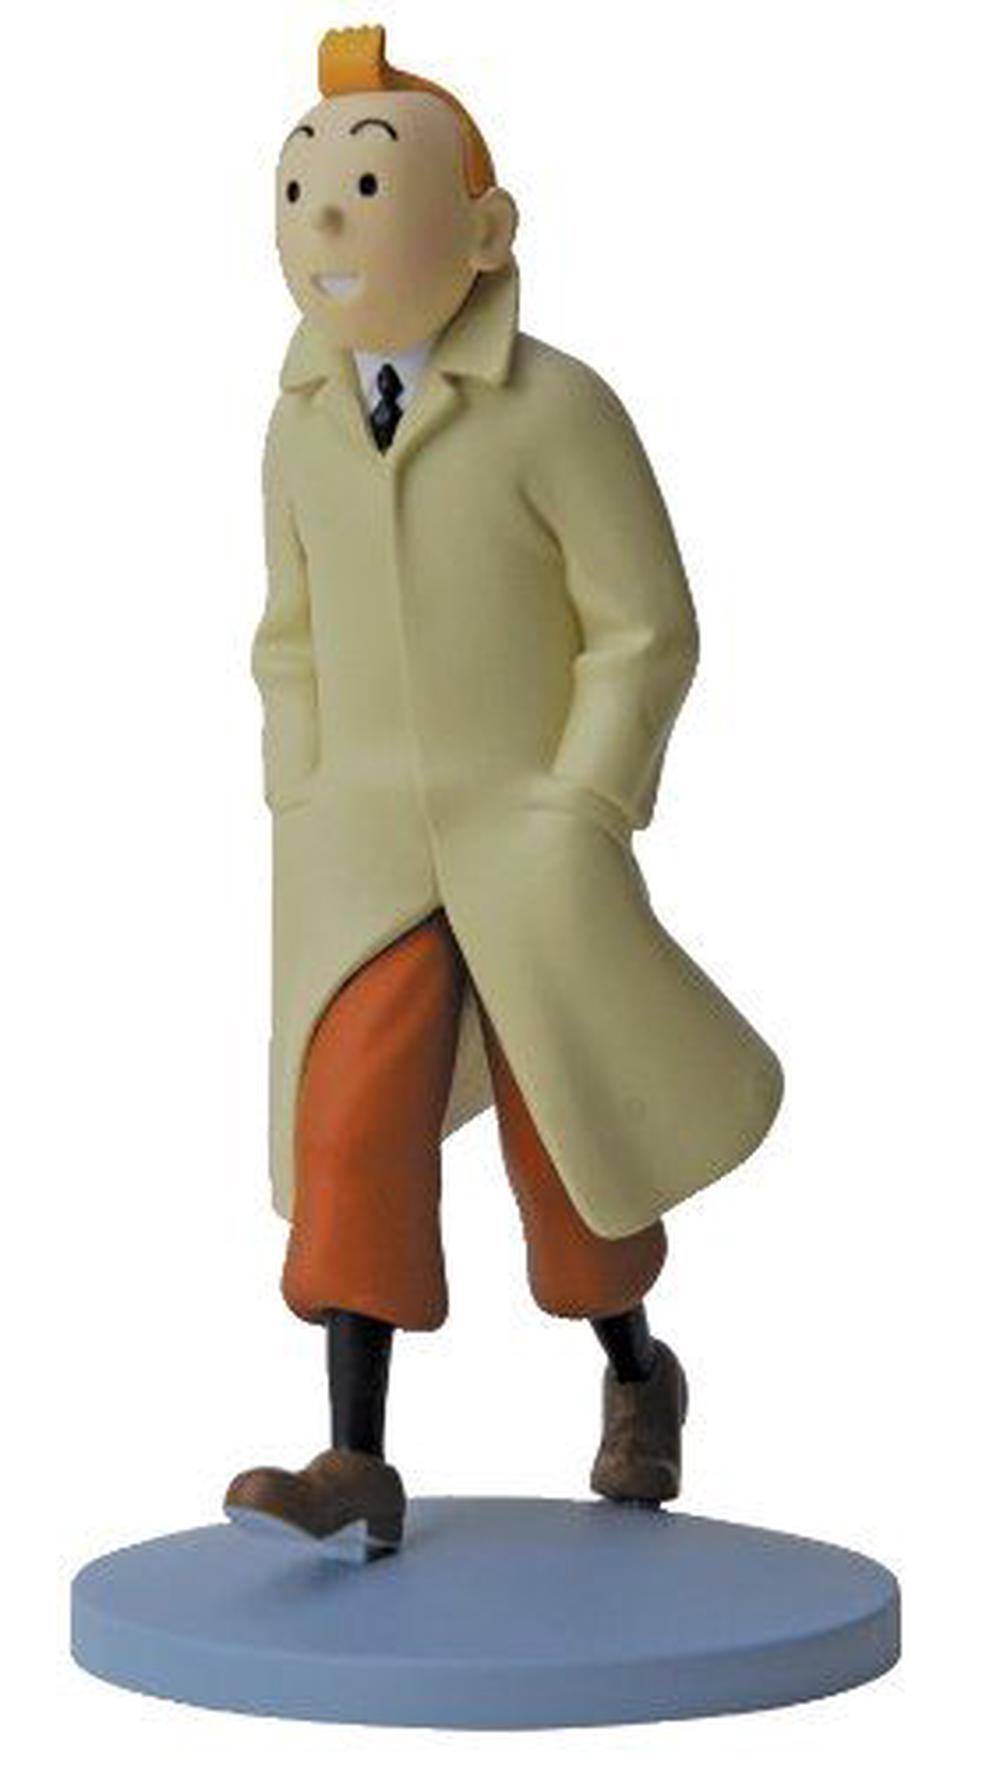 Moulinsart Tintin 12cm Pvc Figurine Tintin Buy Online At The Nile